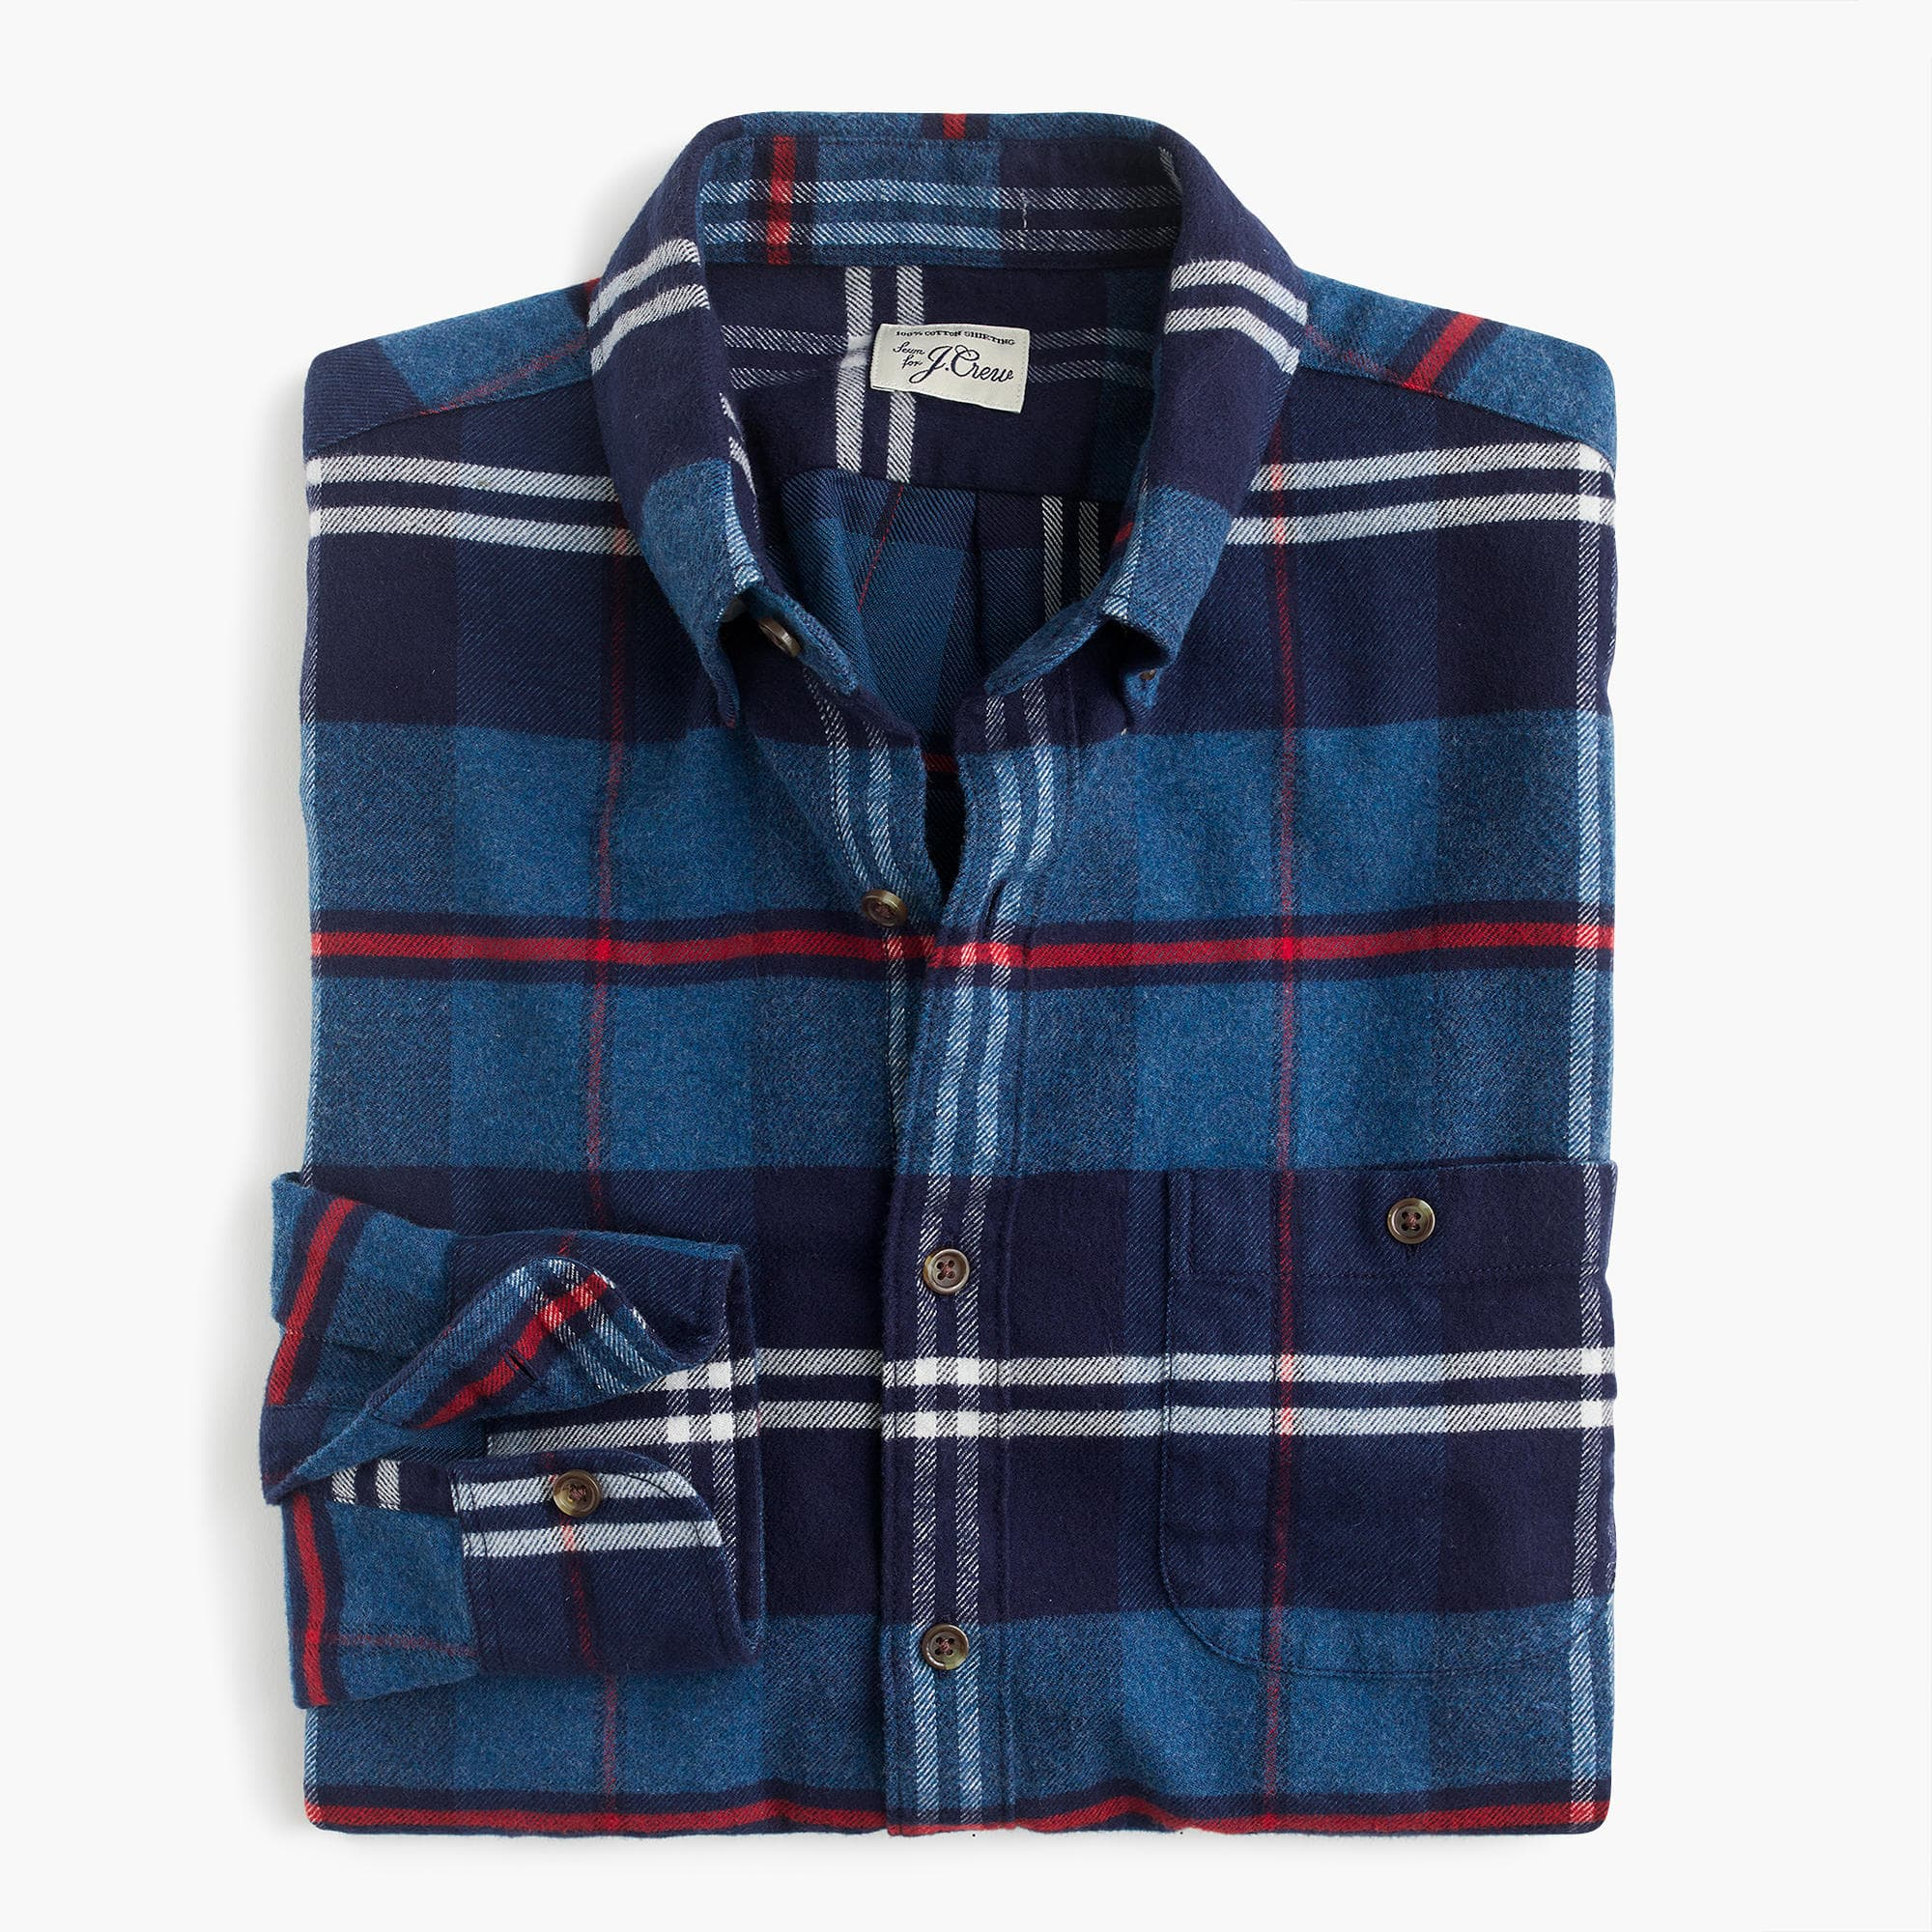 Brushed heather elbow-patch shirt in bold plaid